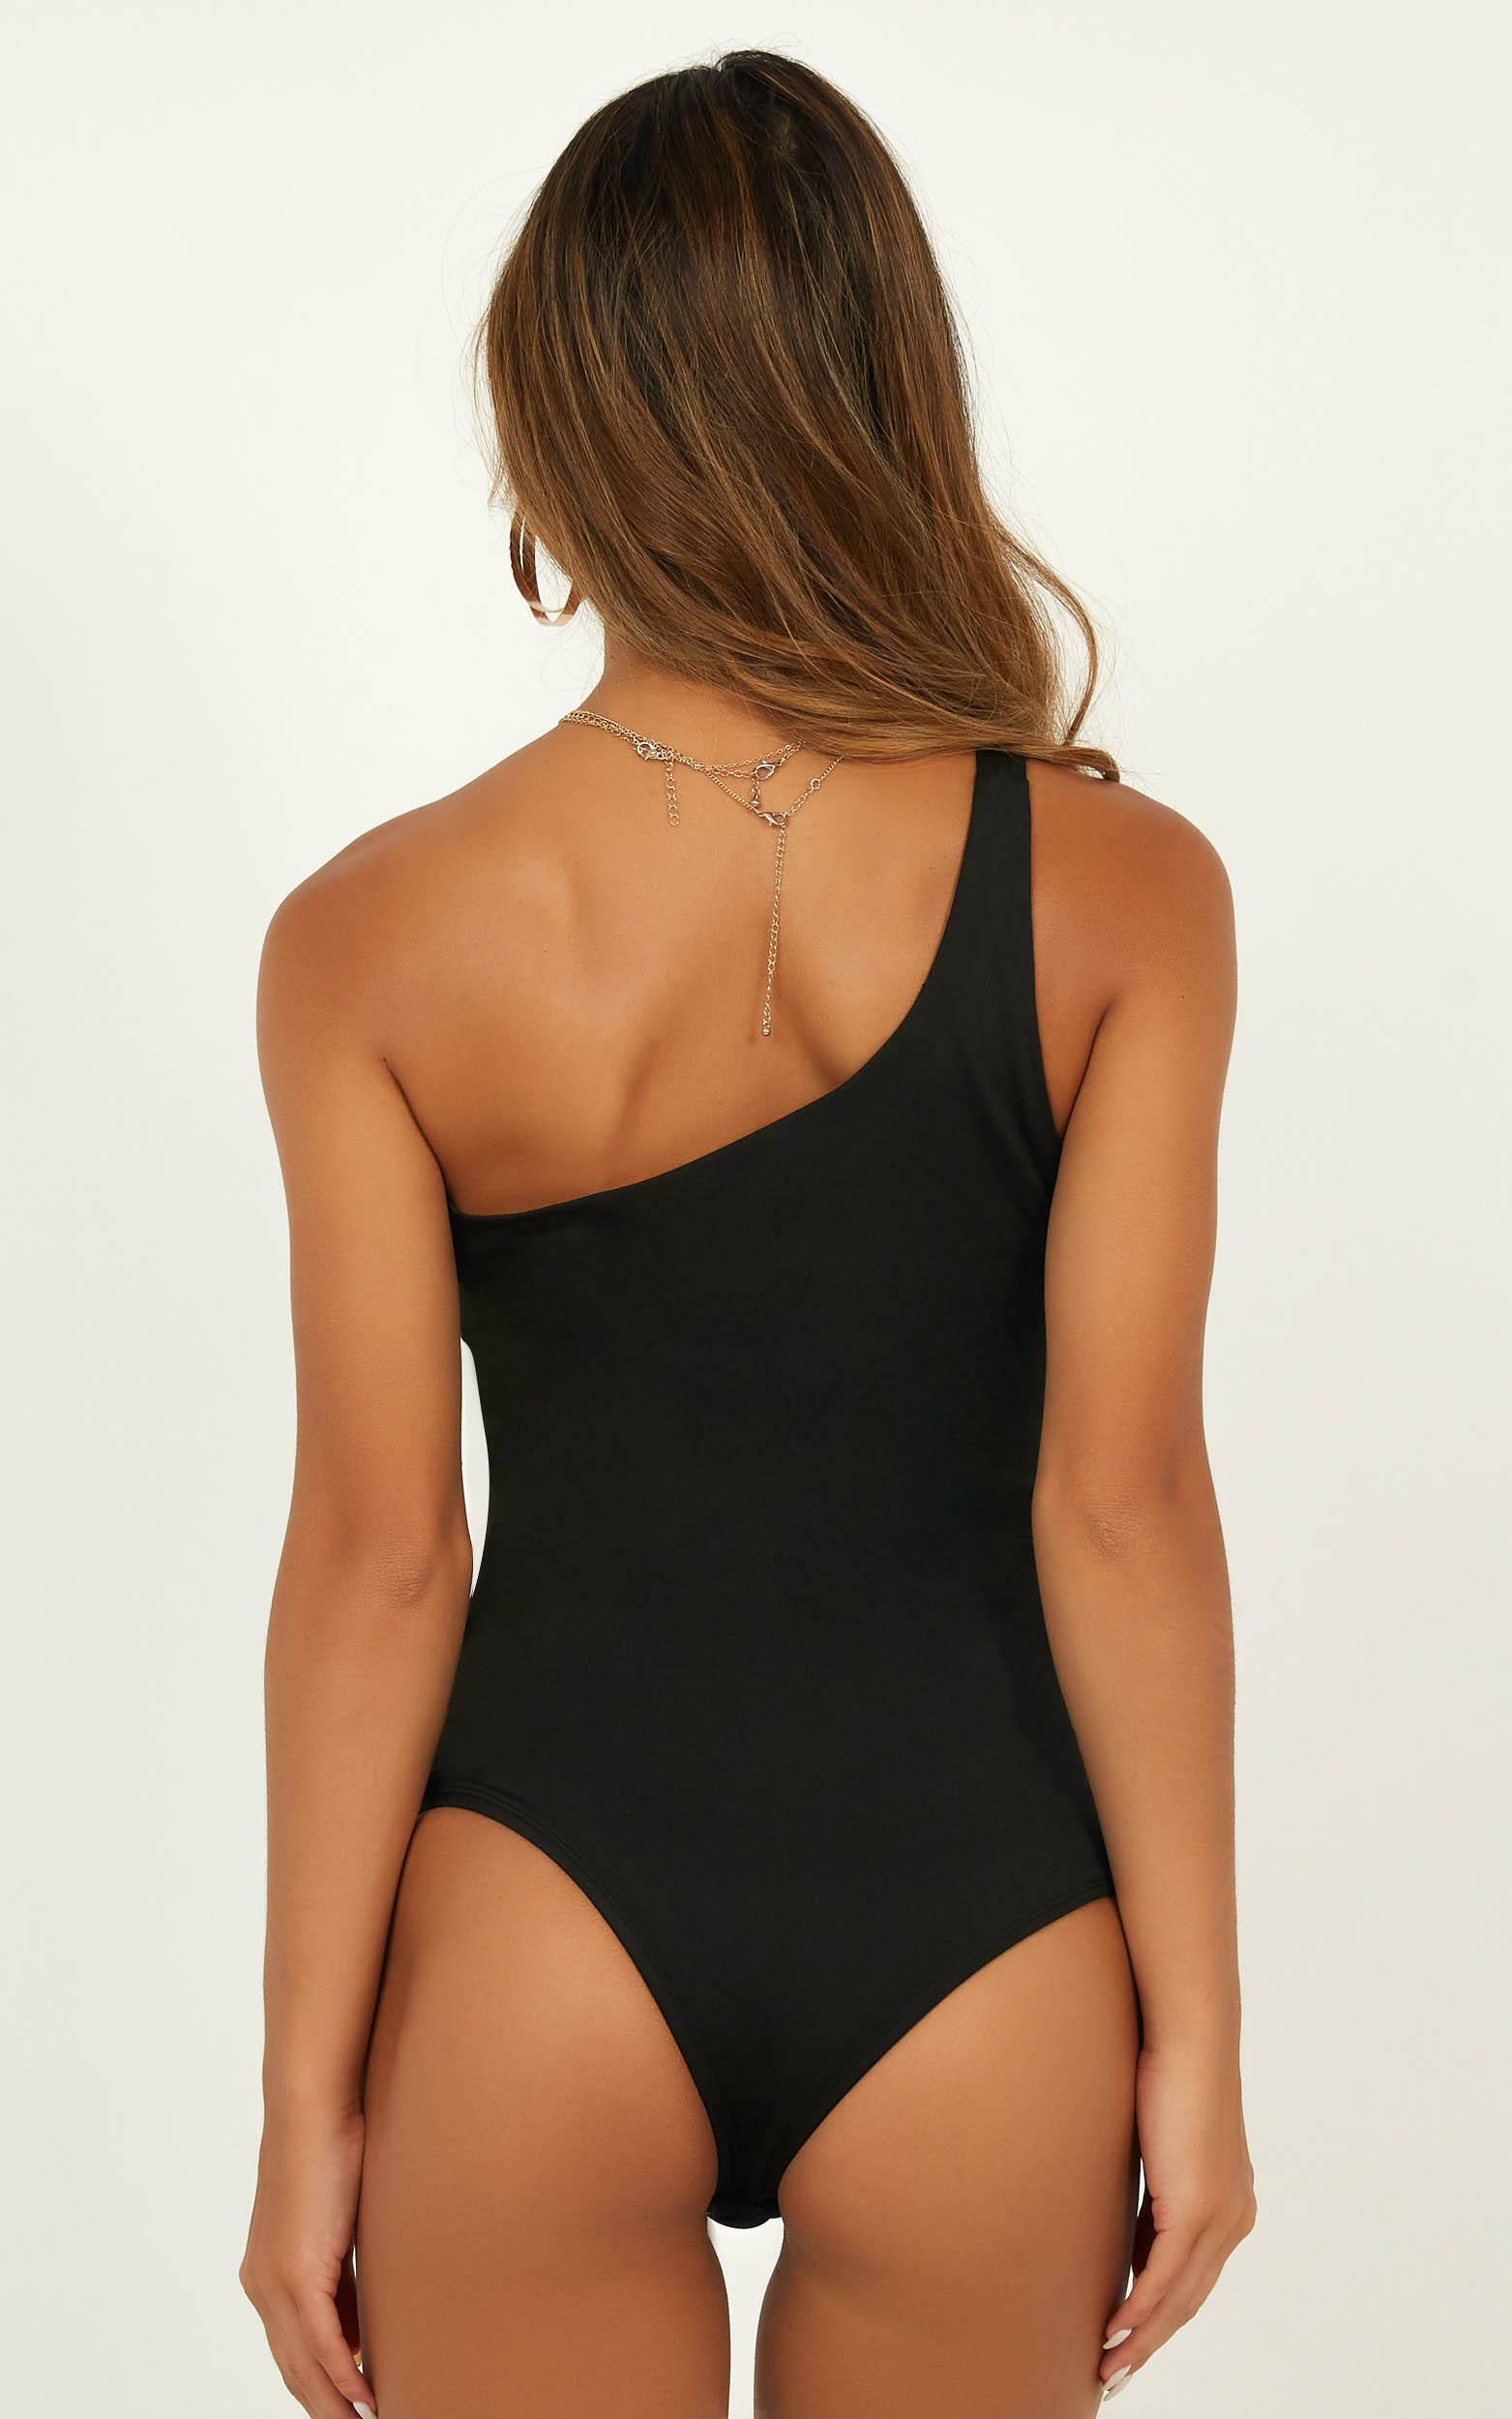 Checked In bodysuit in black - 20 (XXXXL), Black, hi-res image number null